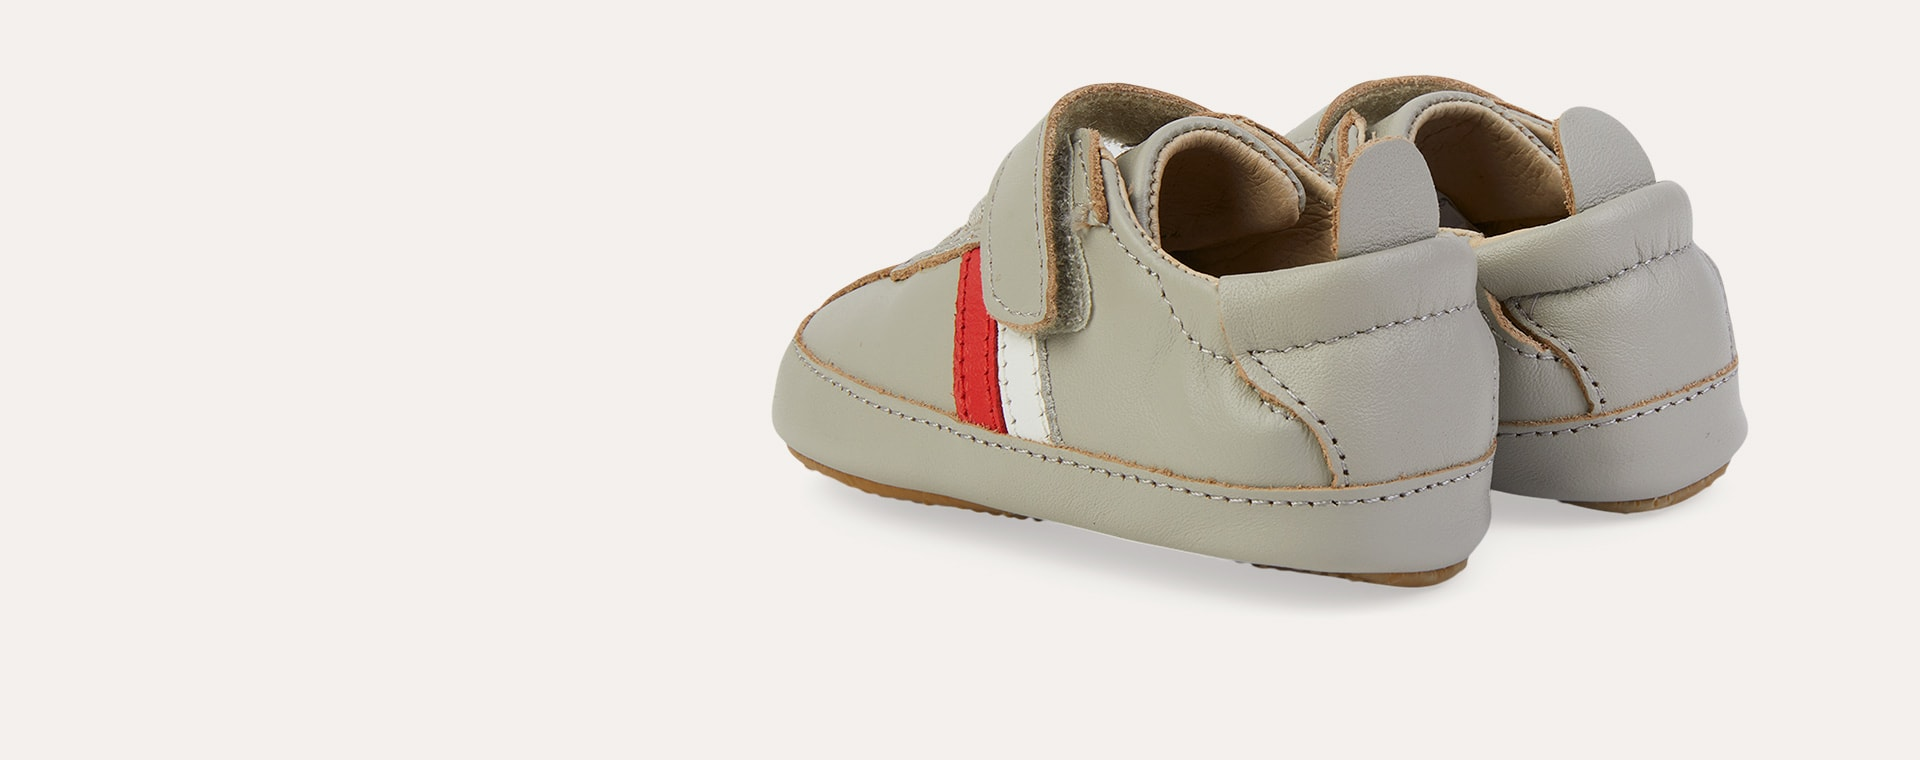 Gris/Snow/Bright Red old soles Rework Shoe